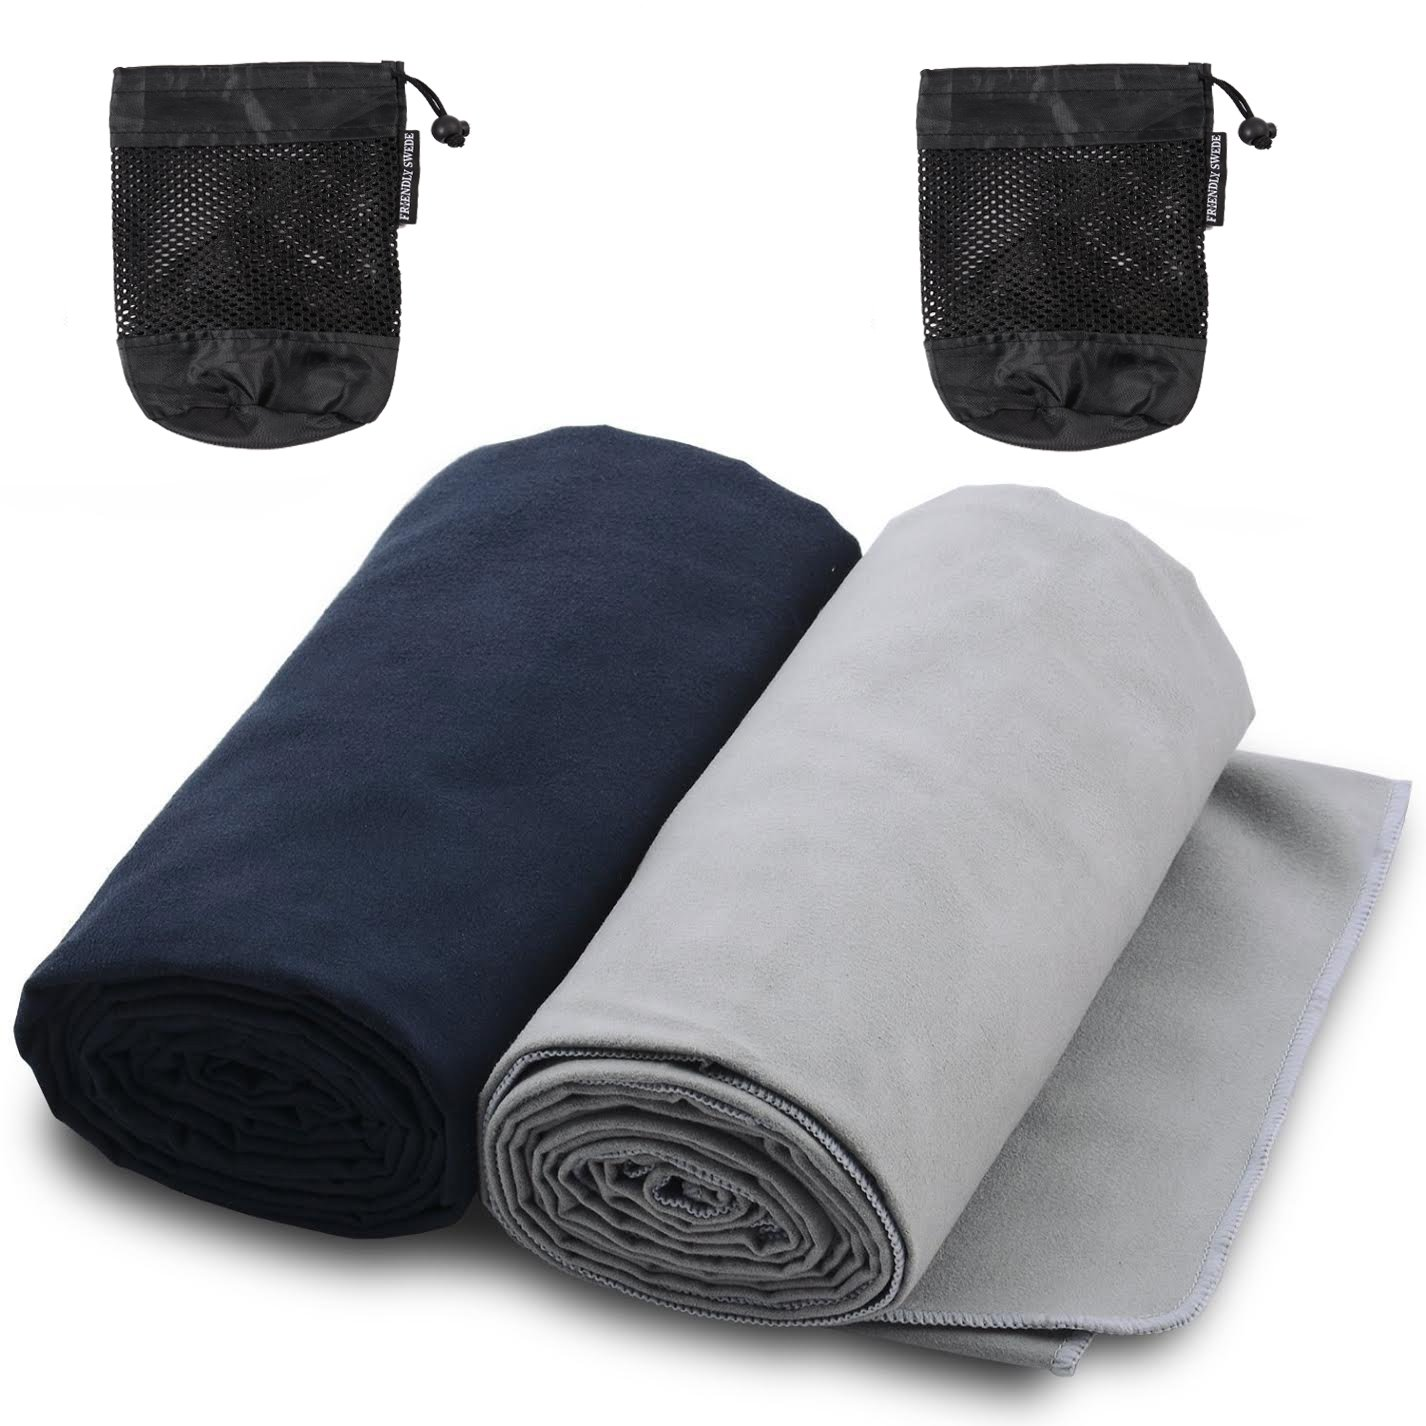 Best Travel Towels 2017: Lightweight for Ultralight packing & Quick Drying Towels for Travel